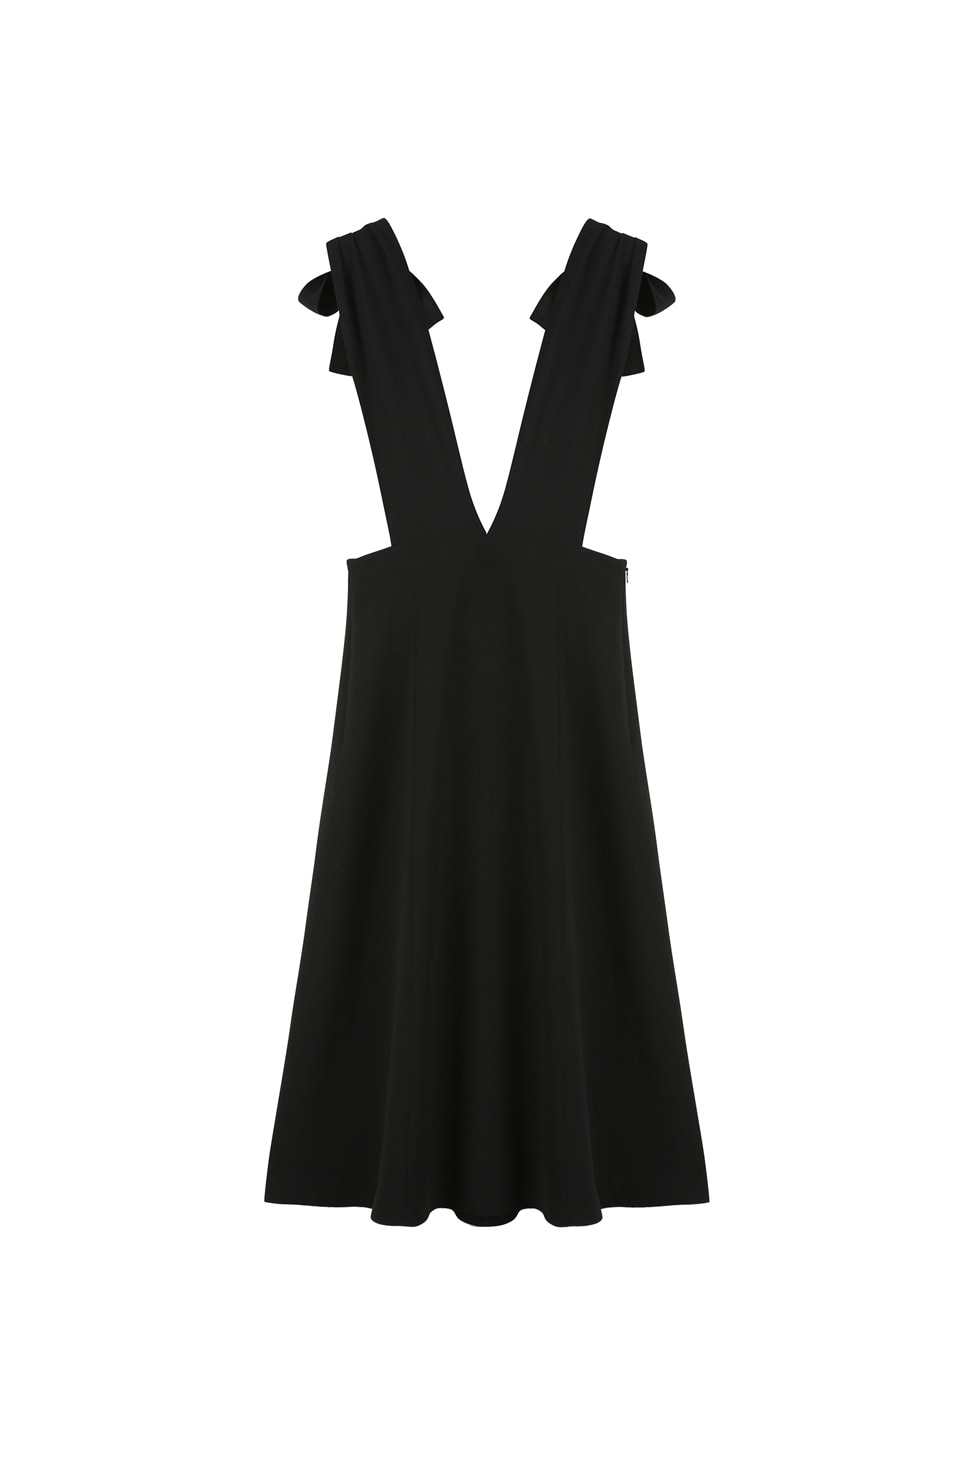 RIBBON TIE DRESS - BLACK